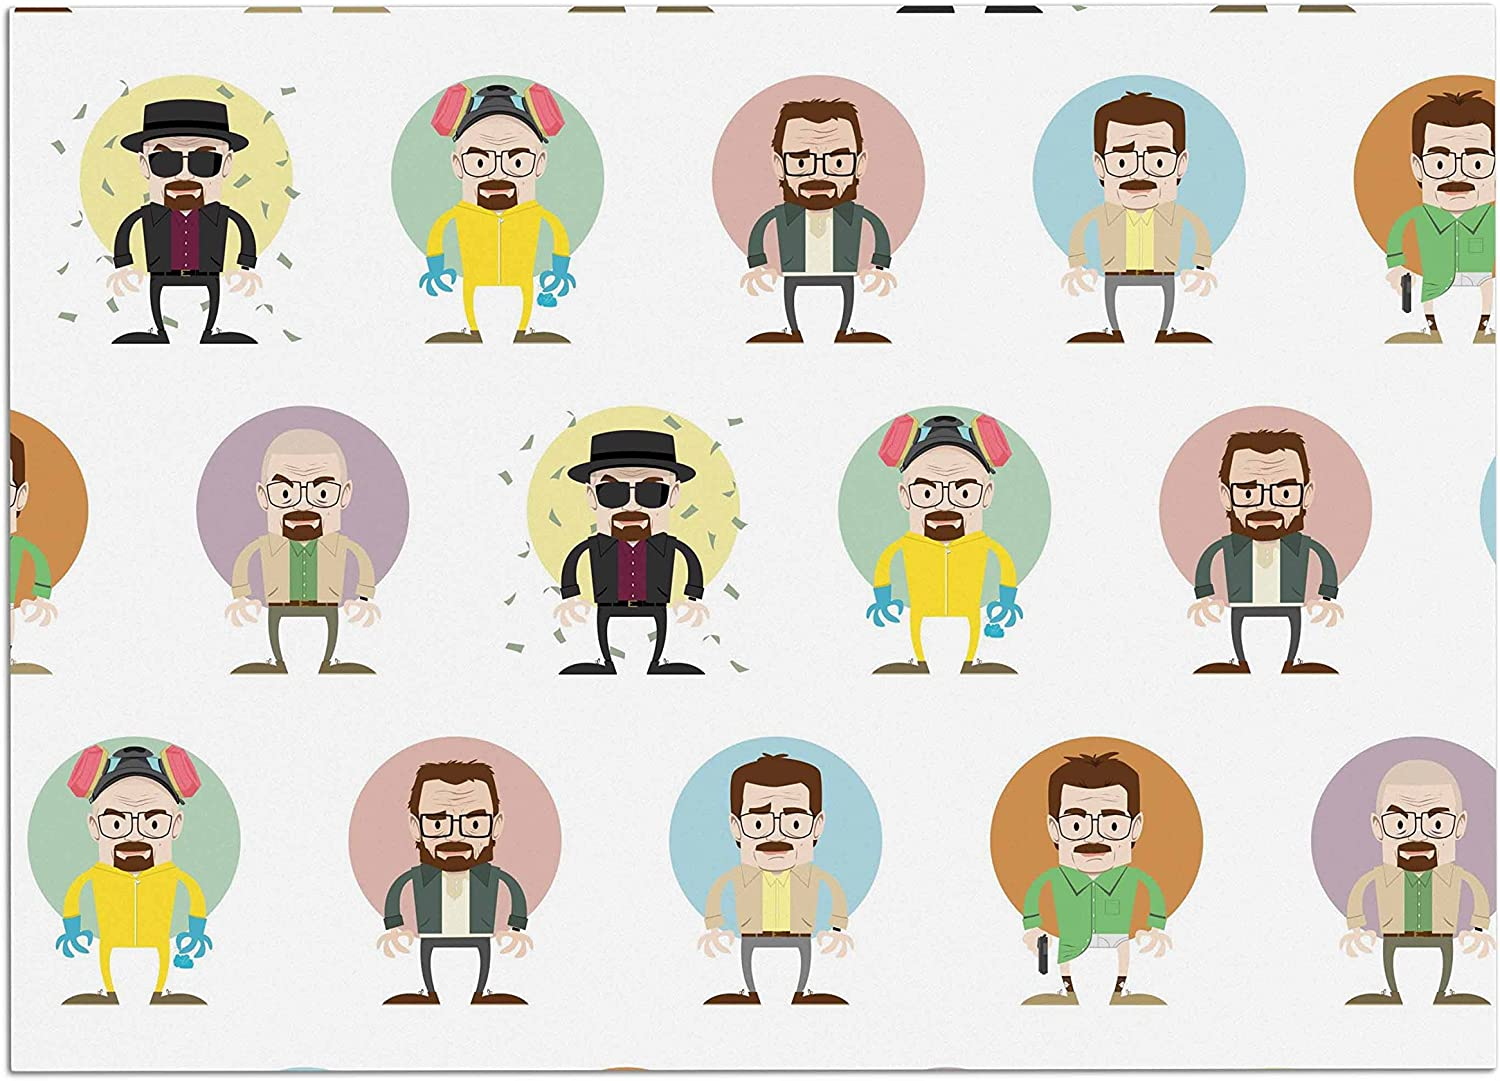 KESS InHouse PO1005ADM02 Juan Paolo The Stages of Walter White Breaking Bad Dog Place Mat, 24  x 15